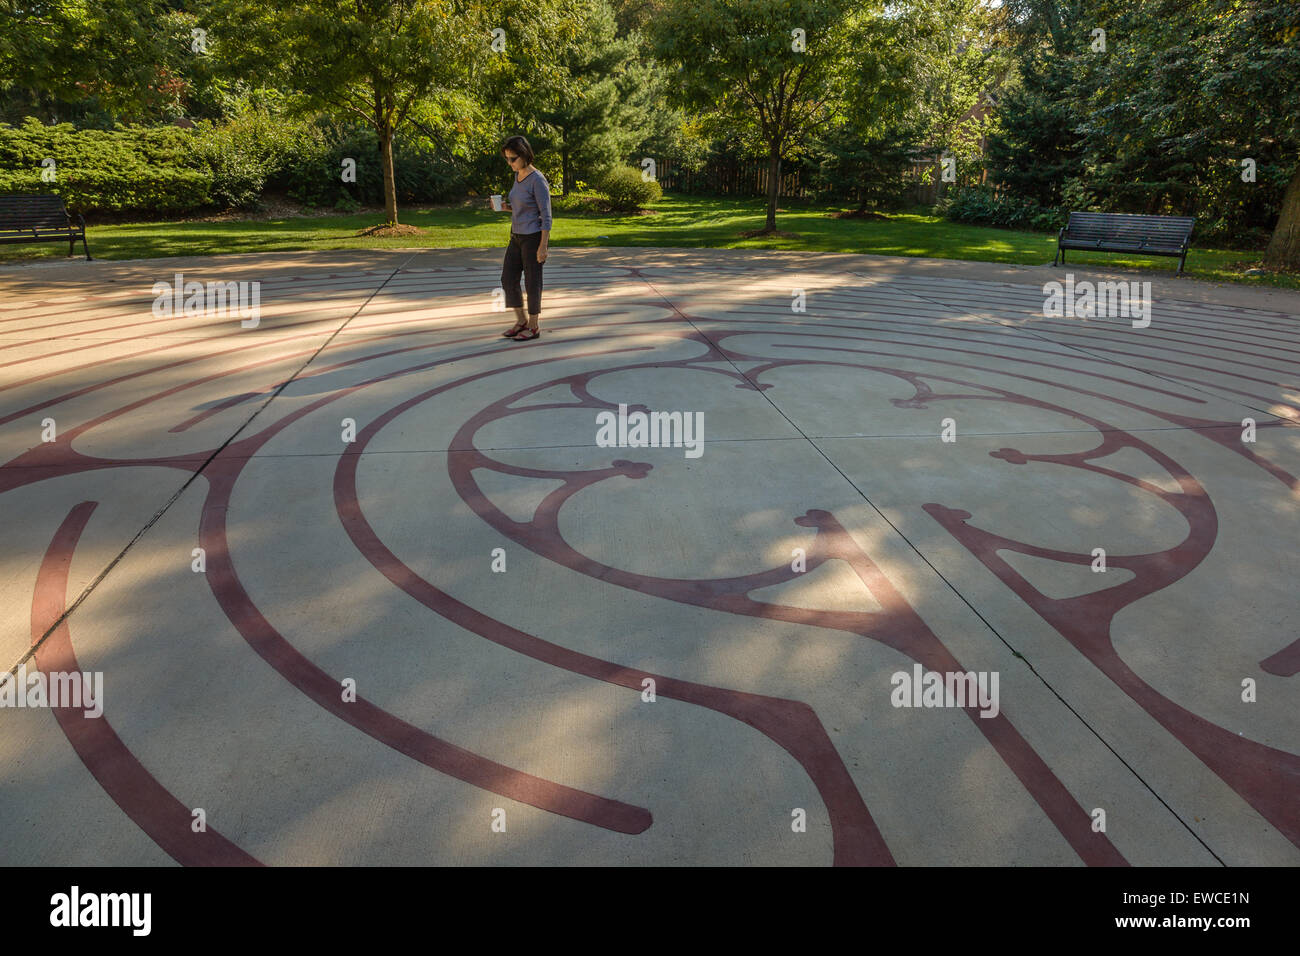 One person walking the Labyrinth in Central Park. - Stock Image